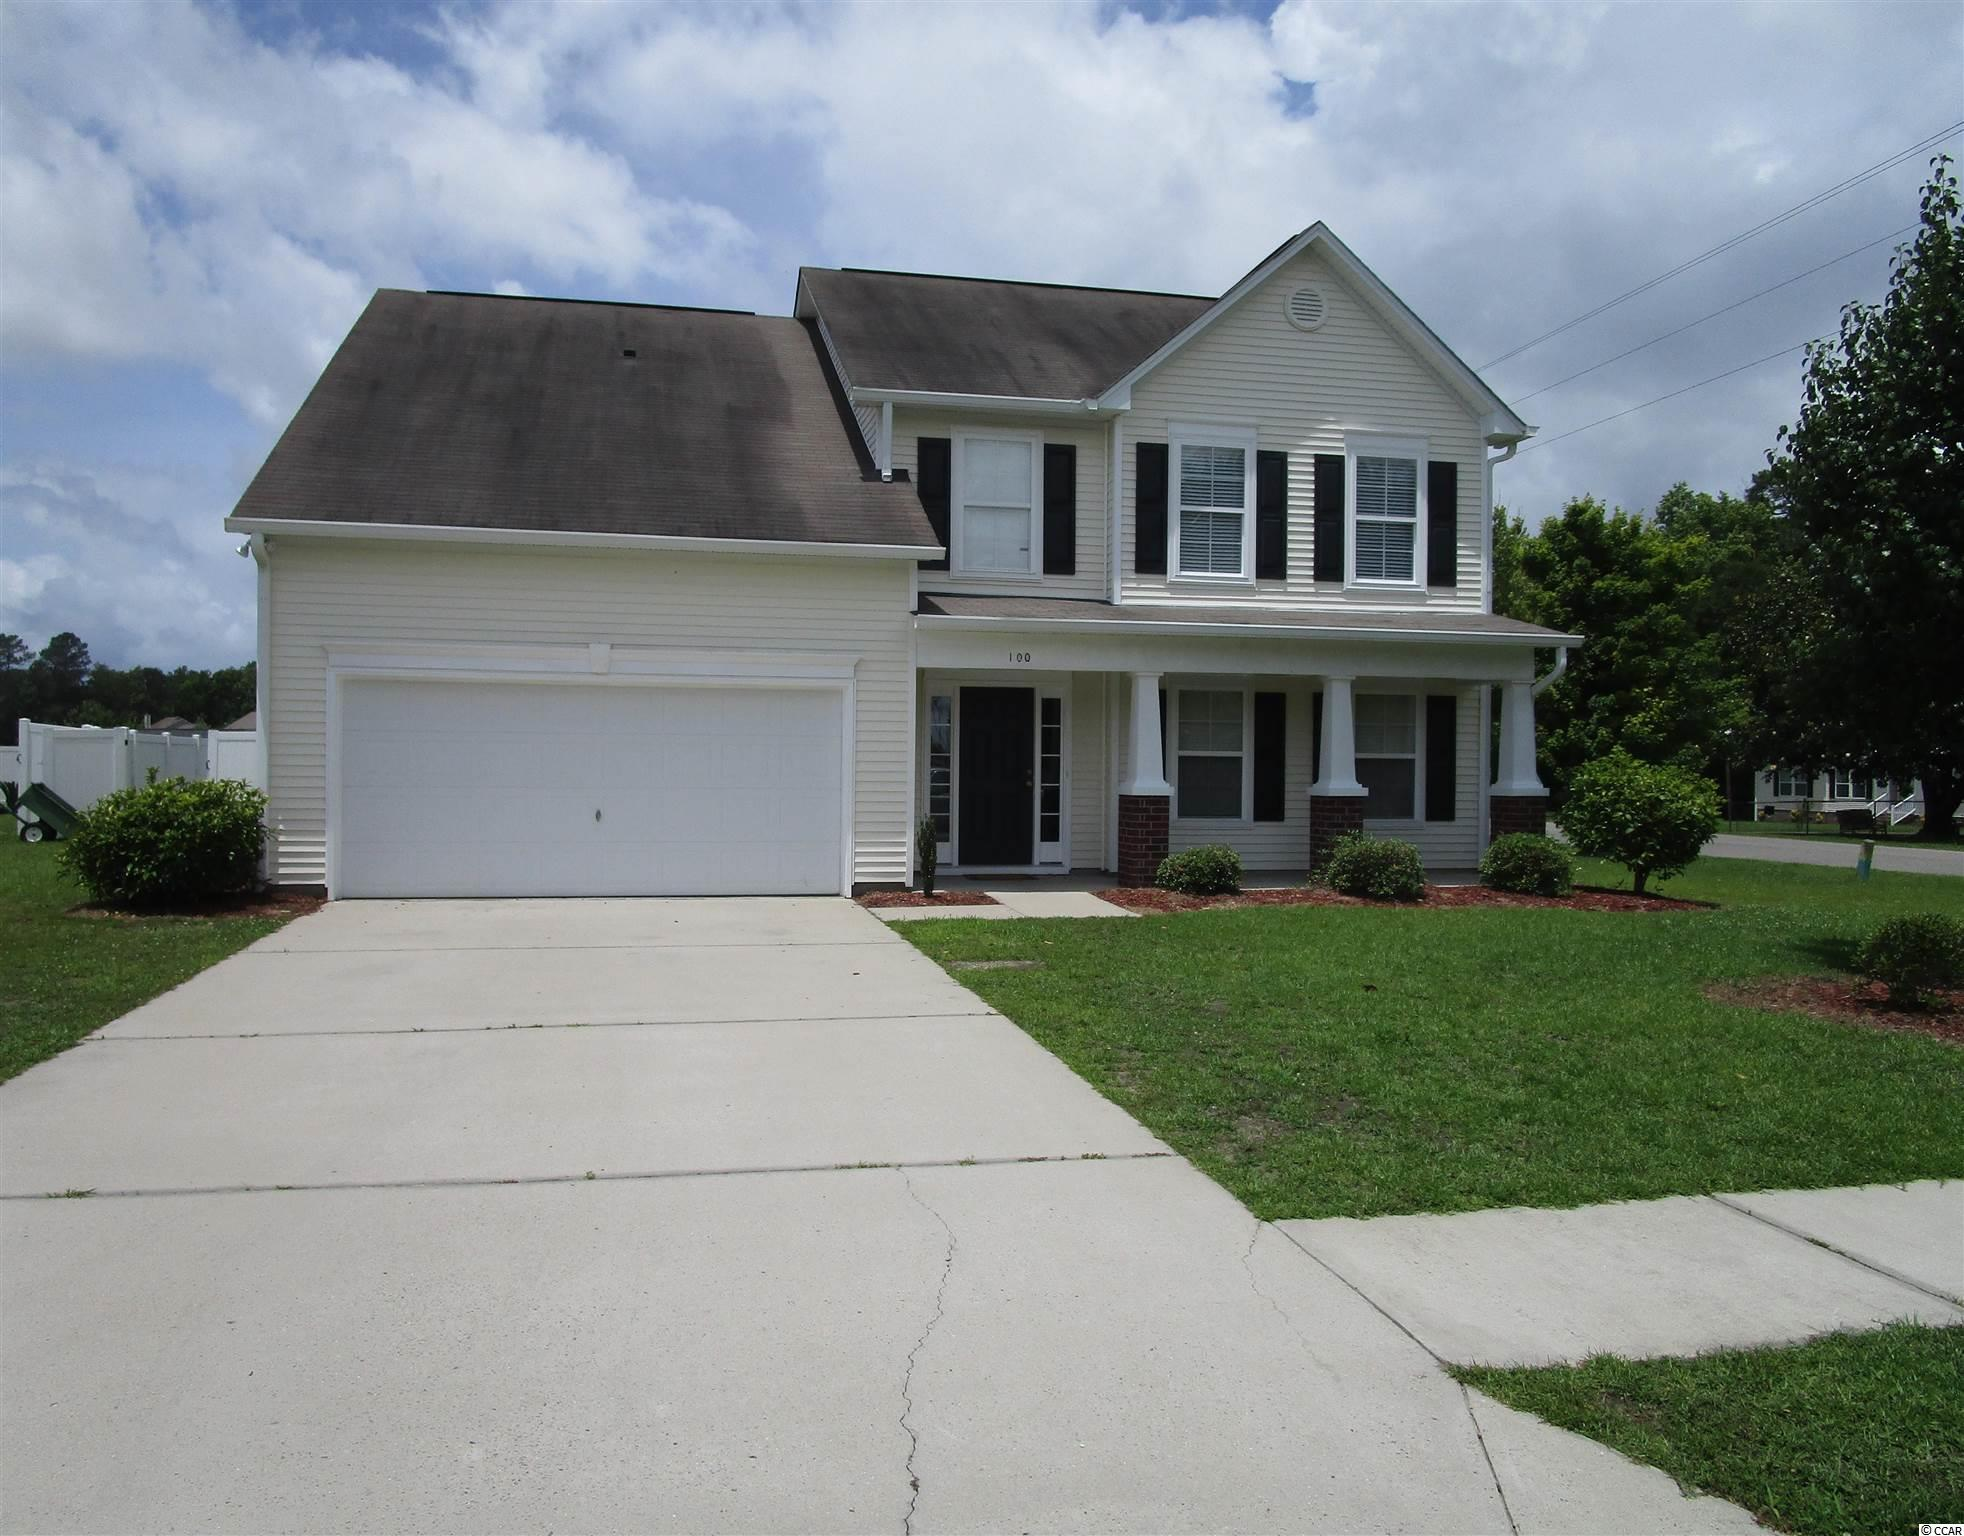 Just listed, move in ready, low HOA, with over 2400 heated sqft, 2 car garage, 5 bedroom, 2.5 bath, sitting on a .27 acre corner lot, enjoy sitting out on your back patio with a 6 foot privacy fence, large enough for all your backyard activities, room for a swimming pool, 10 x 12 detached storage building, if you are looking for a house for a growing family, enough space for visiting relatives, or a house for extra space for home office, craft room, exercise room, etc. don't miss this chance, Chandlers Run is located about 15-20 minutes from all of the Beach activities, easy access to Hwy 22, 9 miles to downtown Conway. All measurements are approximate and to be verified by buyer.